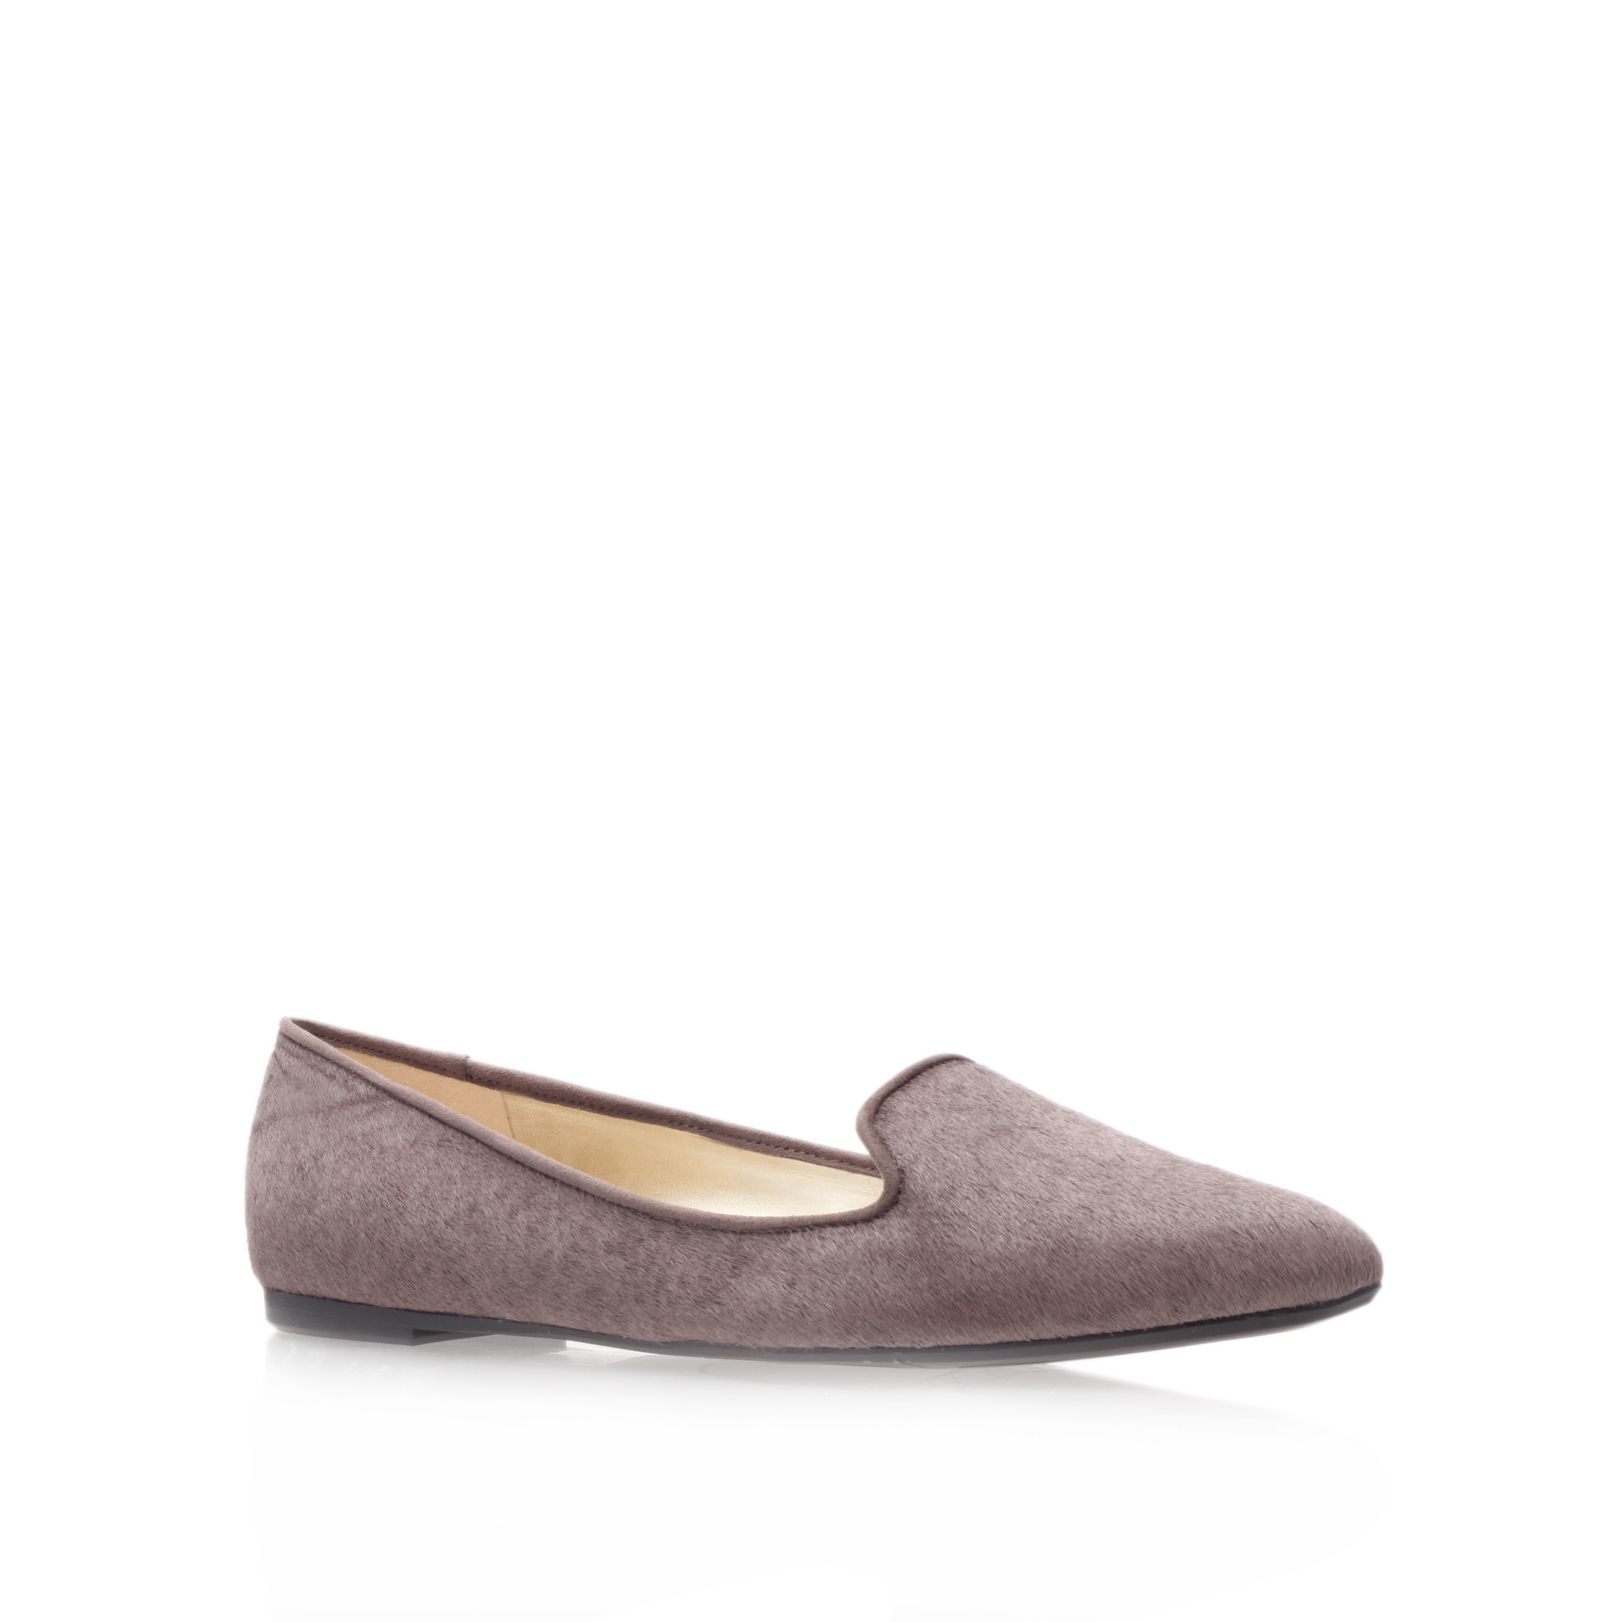 Sossi5 flat slipper shoes